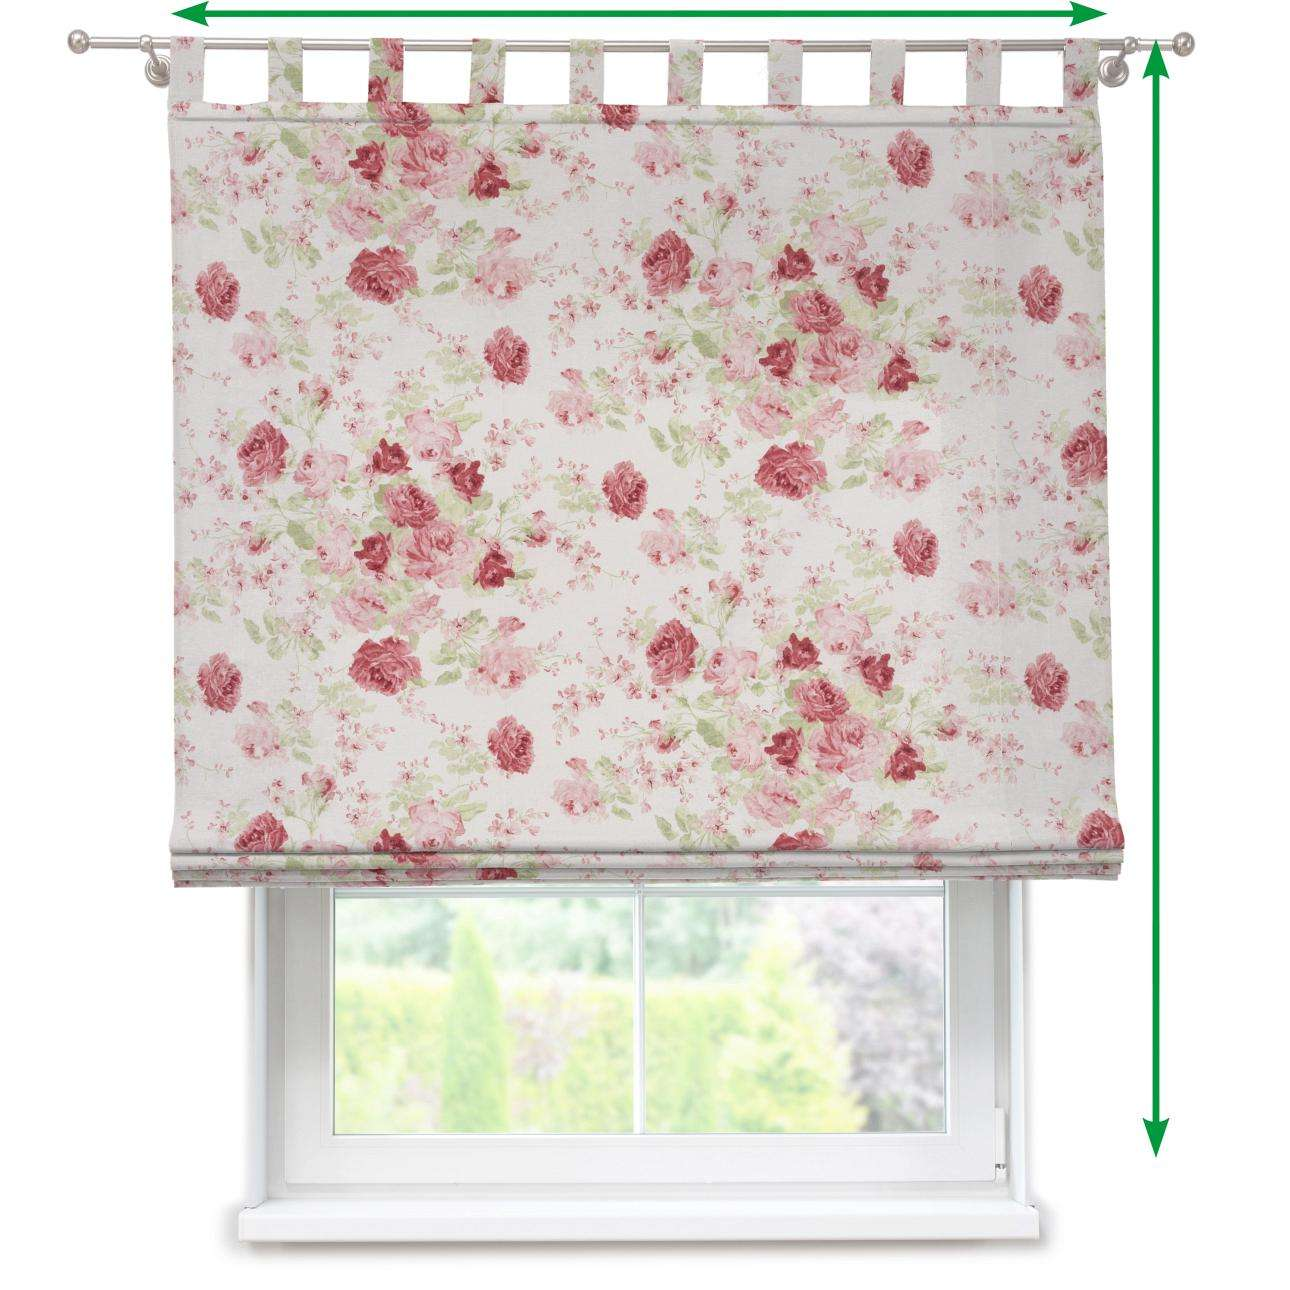 Verona tab top roman blind in collection Flowers, fabric: 140-90